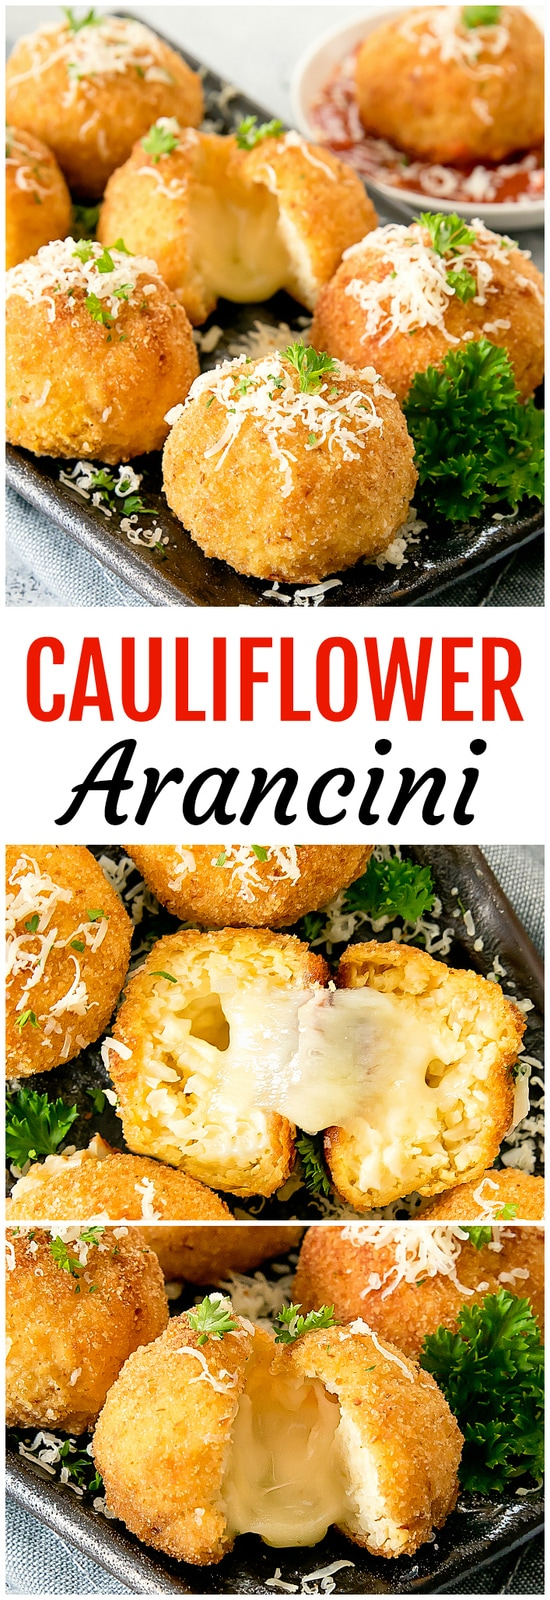 Cauliflower Arancini. Baked crispy cauliflower rice balls stuffed with cheese. A healthier alternative to traditional arancini.